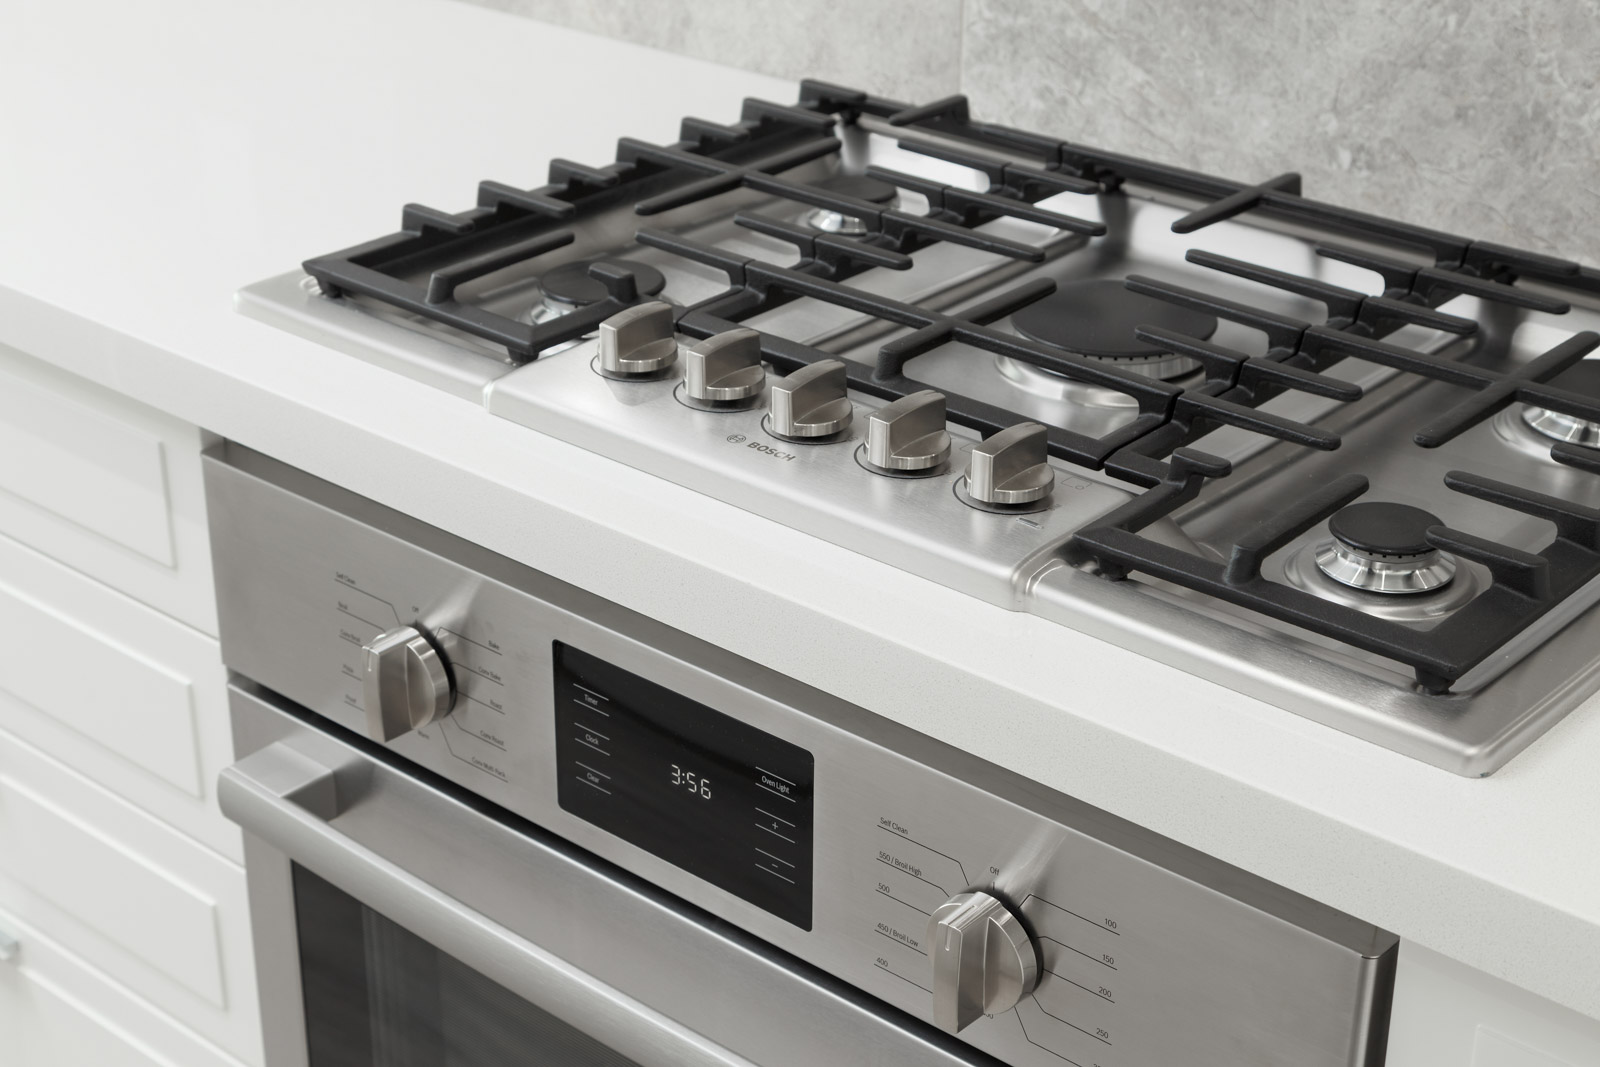 high end gas stove in kitchen in property located in River District